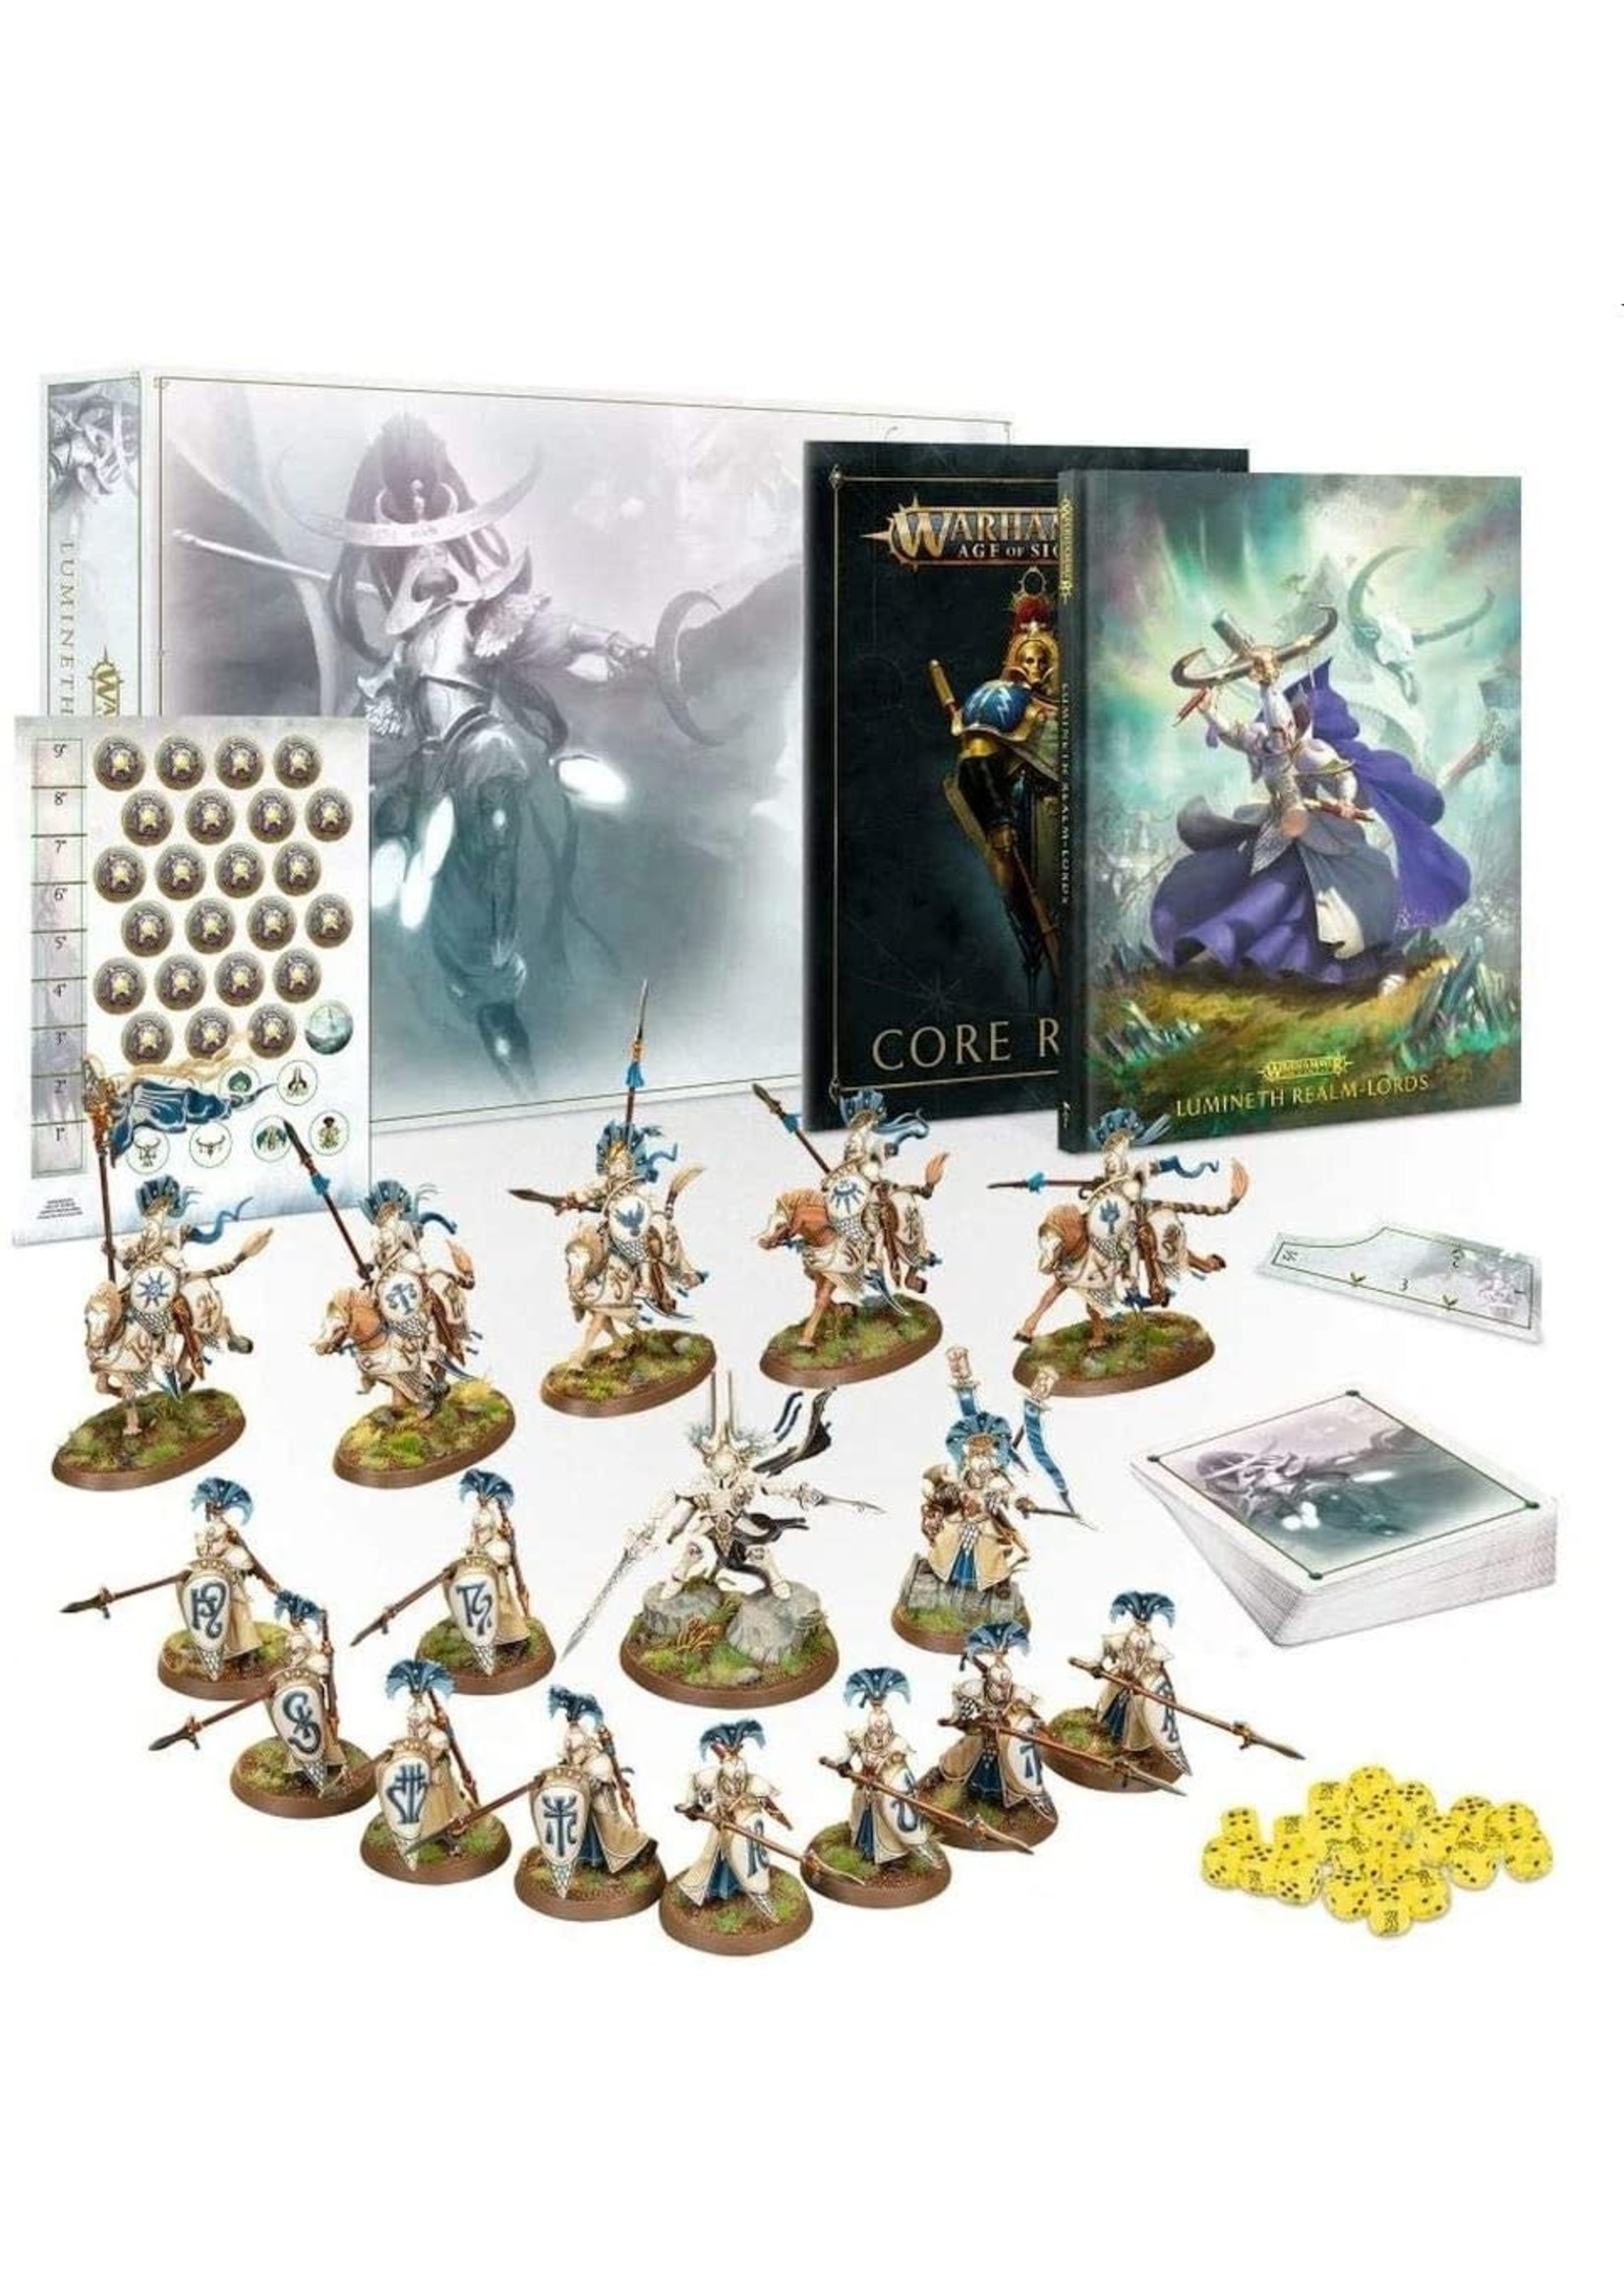 Warhammer: Age of Sigmar Age of Sigmar: Lumineth Realm-Lords Launch Set